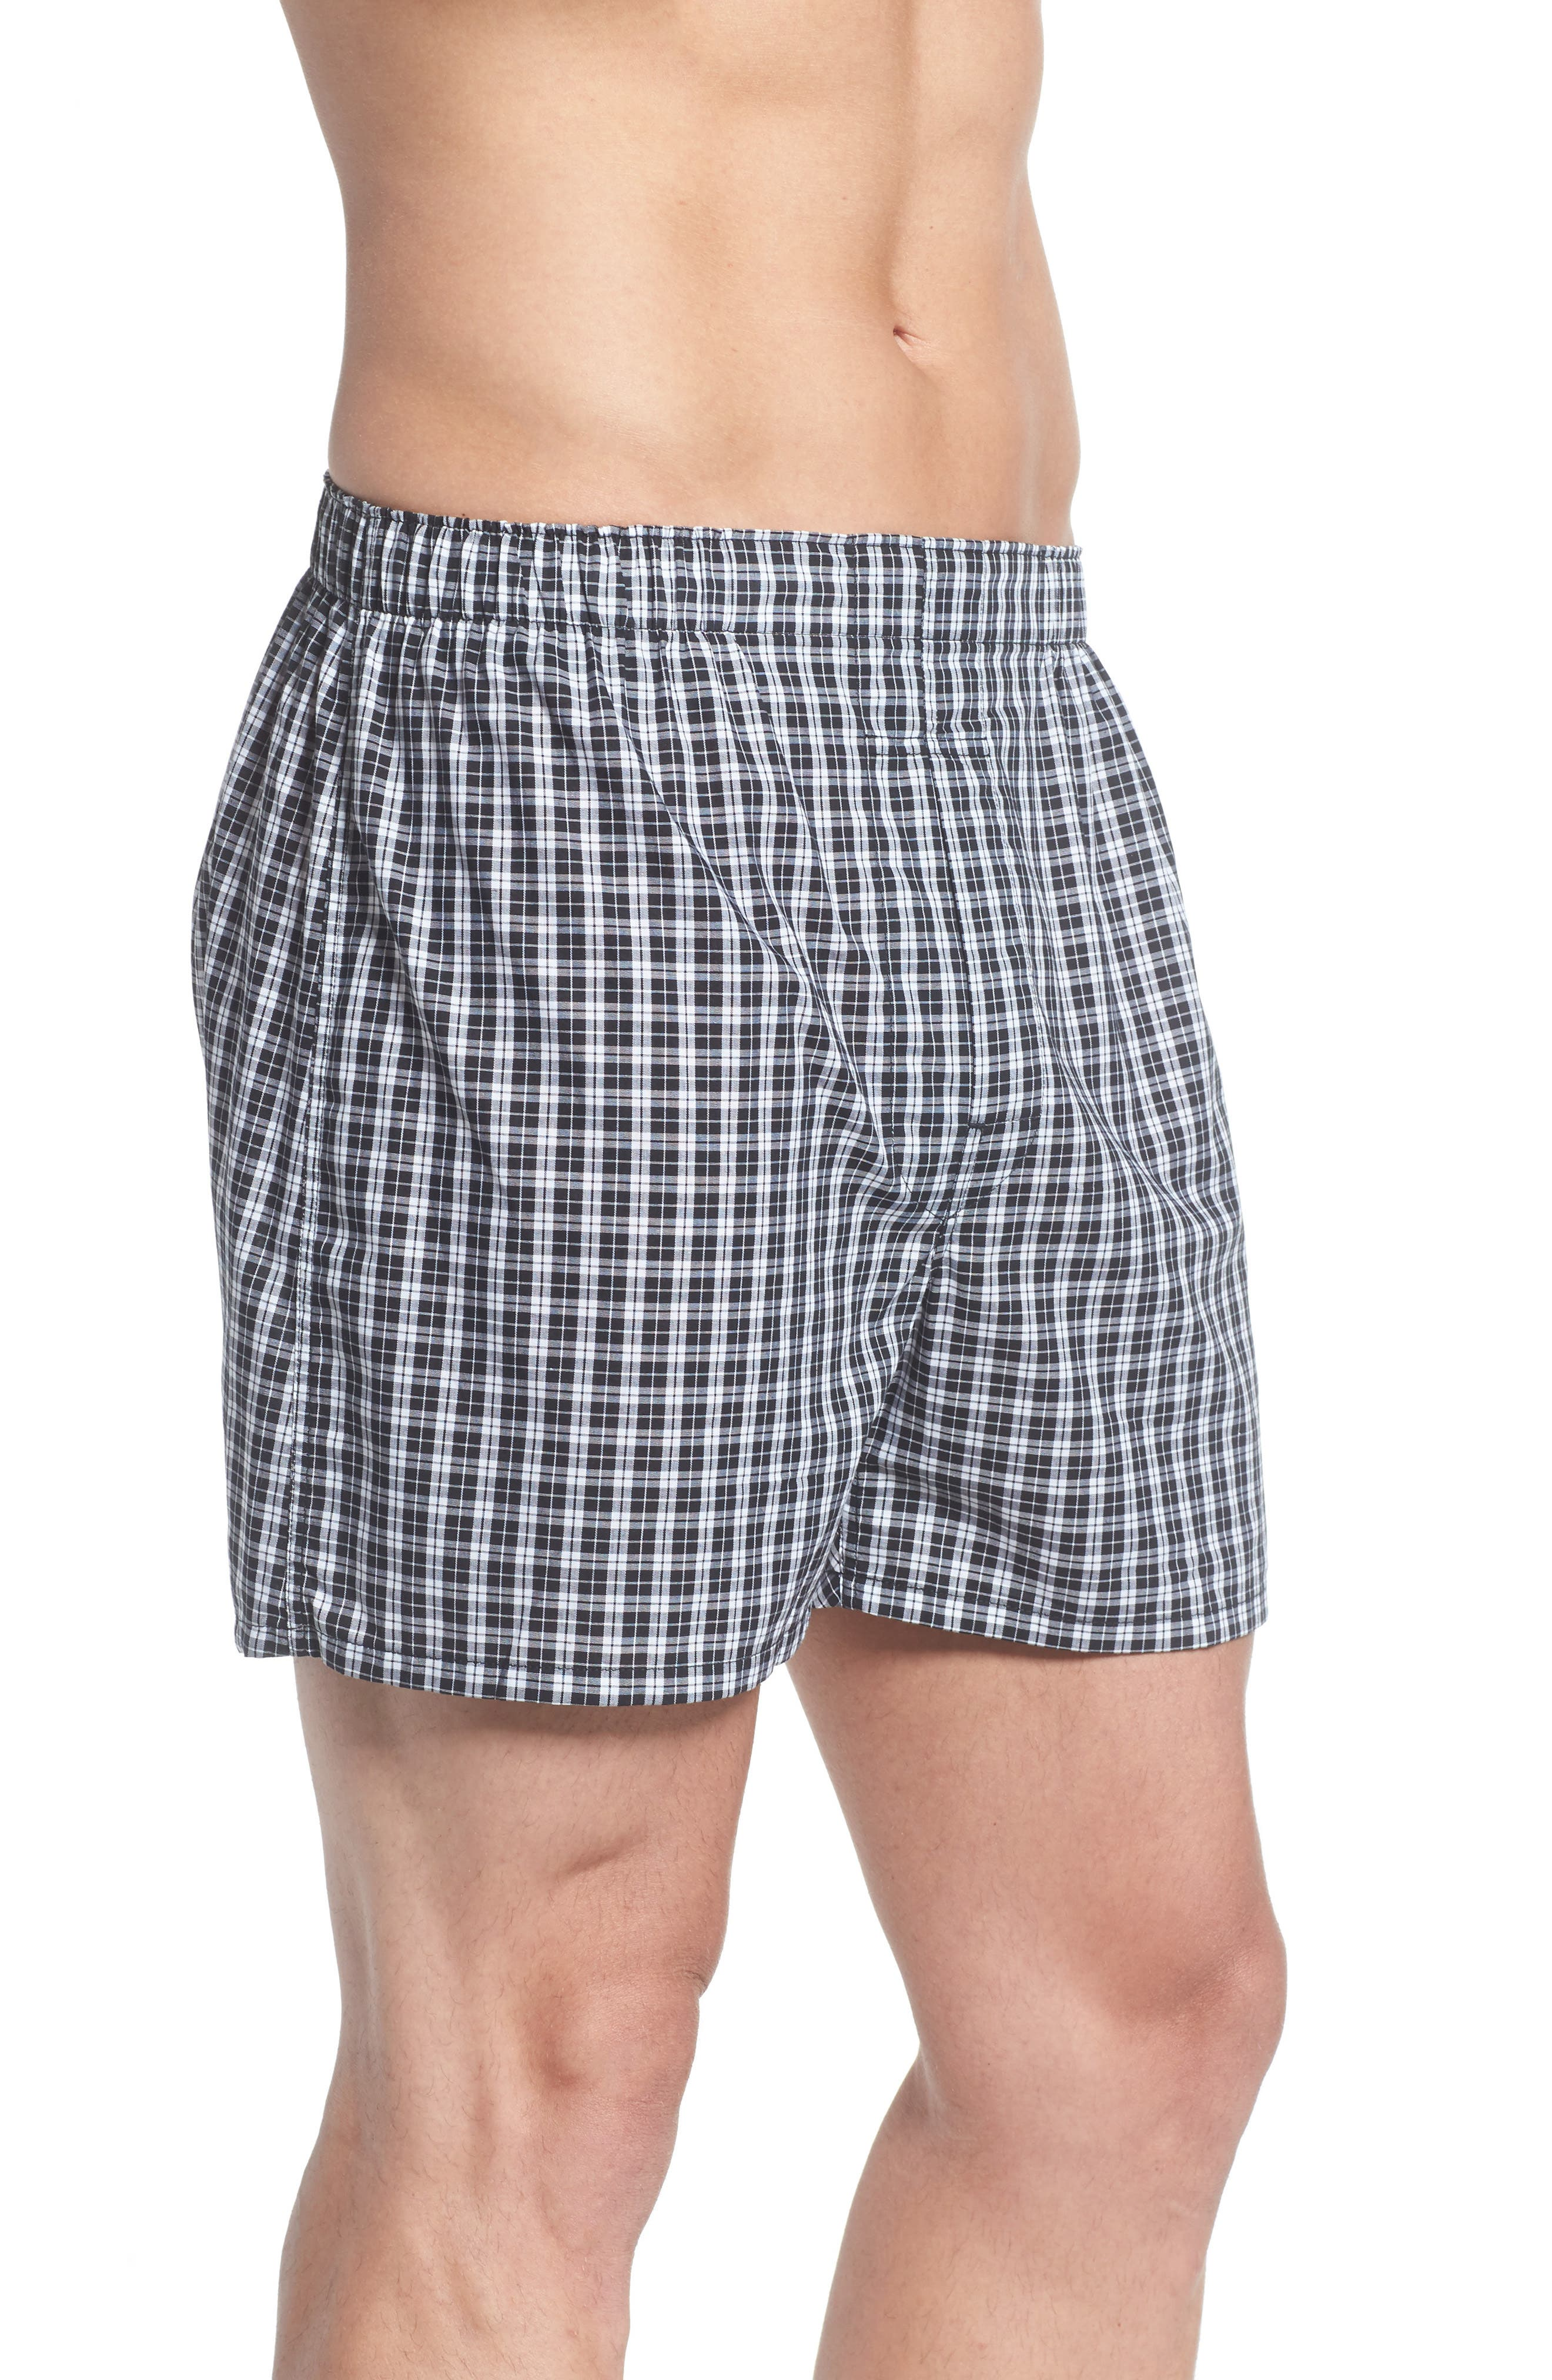 Assorted 3-Pack Woven Cotton Boxers,                             Alternate thumbnail 4, color,                             003